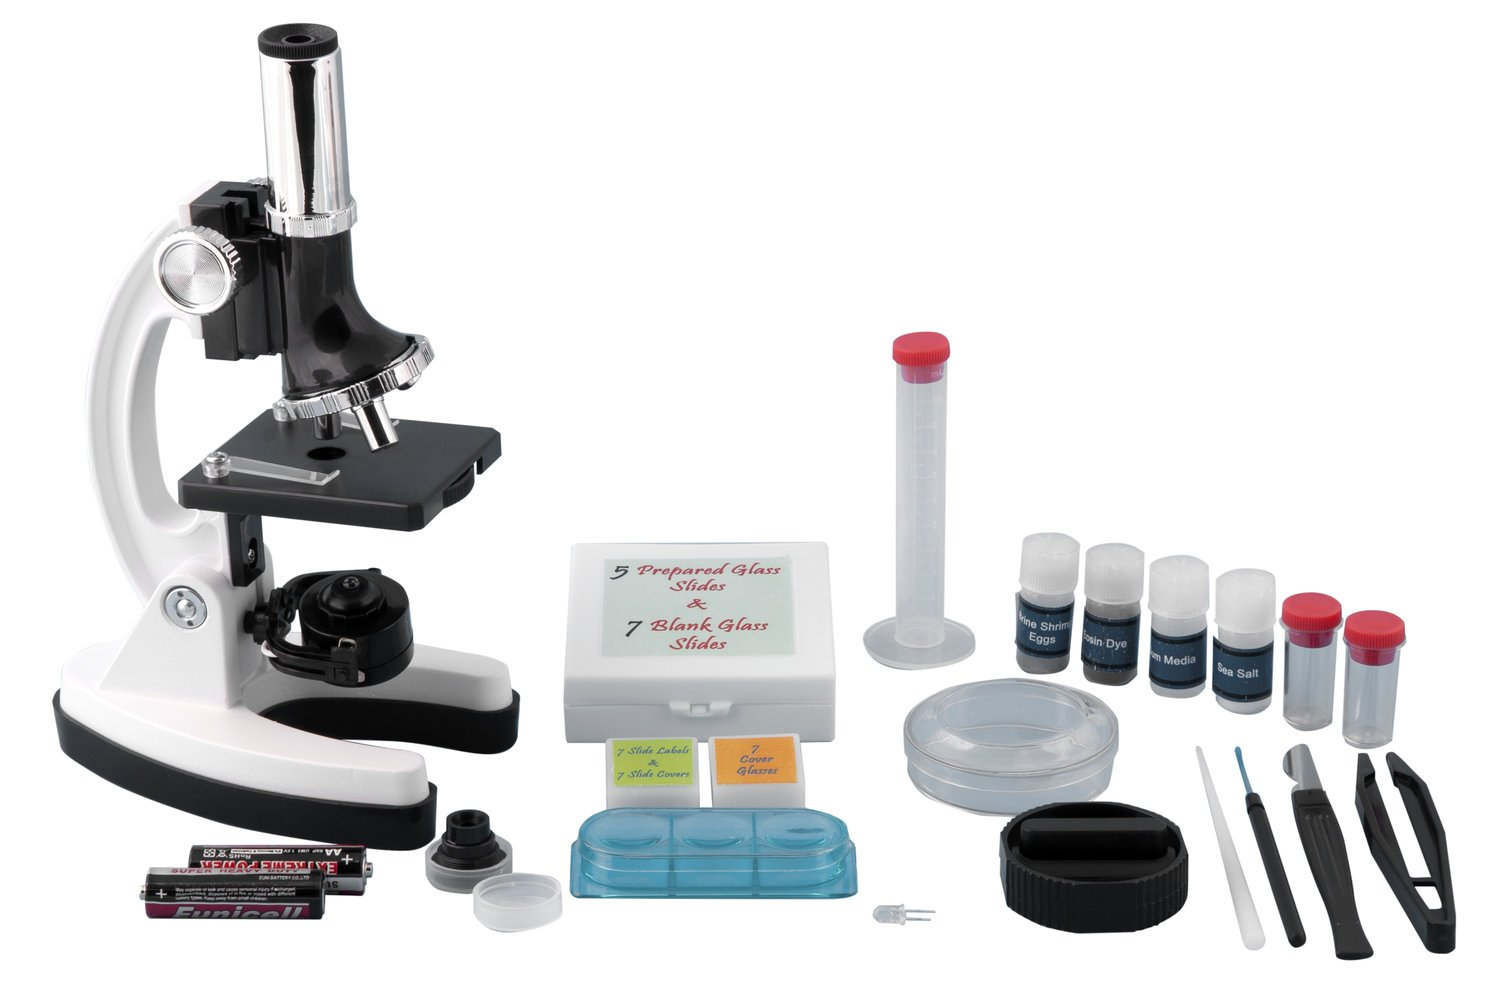 Pearington AP-M0004 Kids Beginner Metal Microscope Set with 58 Piece Accessory Kit and Case, 12.58'' Height, 4.76'' Wide, 15.33'' Length